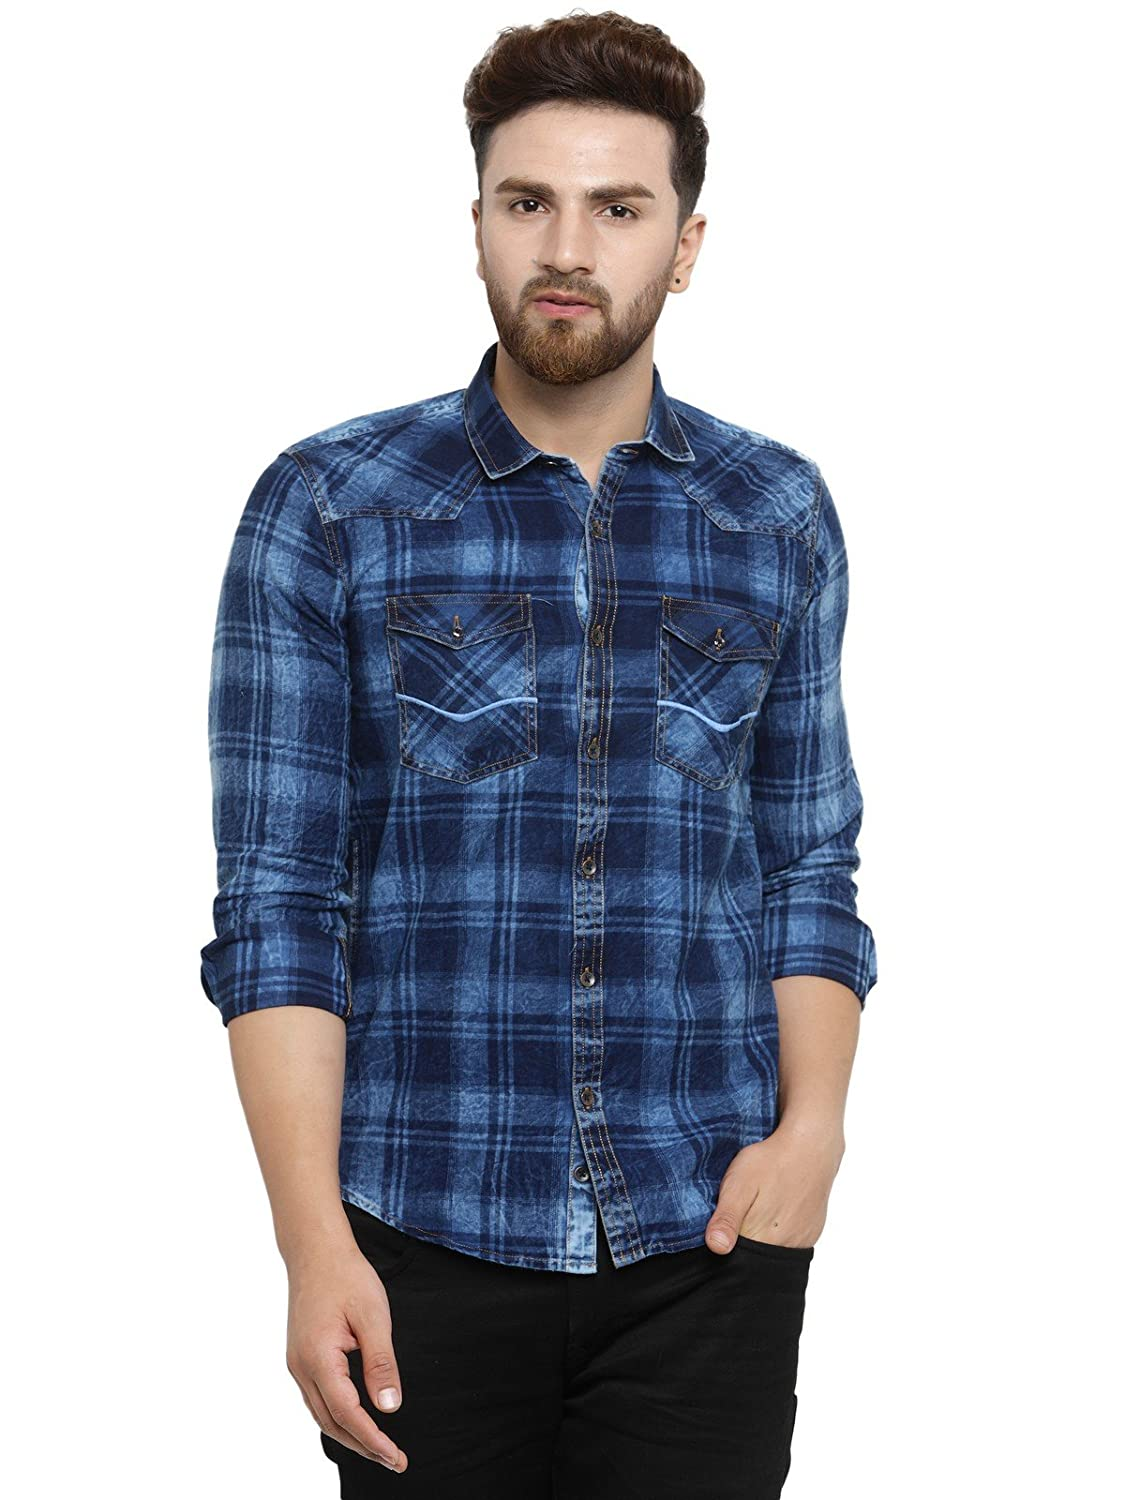 46c986a802 Kivon Men s Full Sleeve Checkred Casual Shirt Blue (Size M)  Amazon.in   Clothing   Accessories